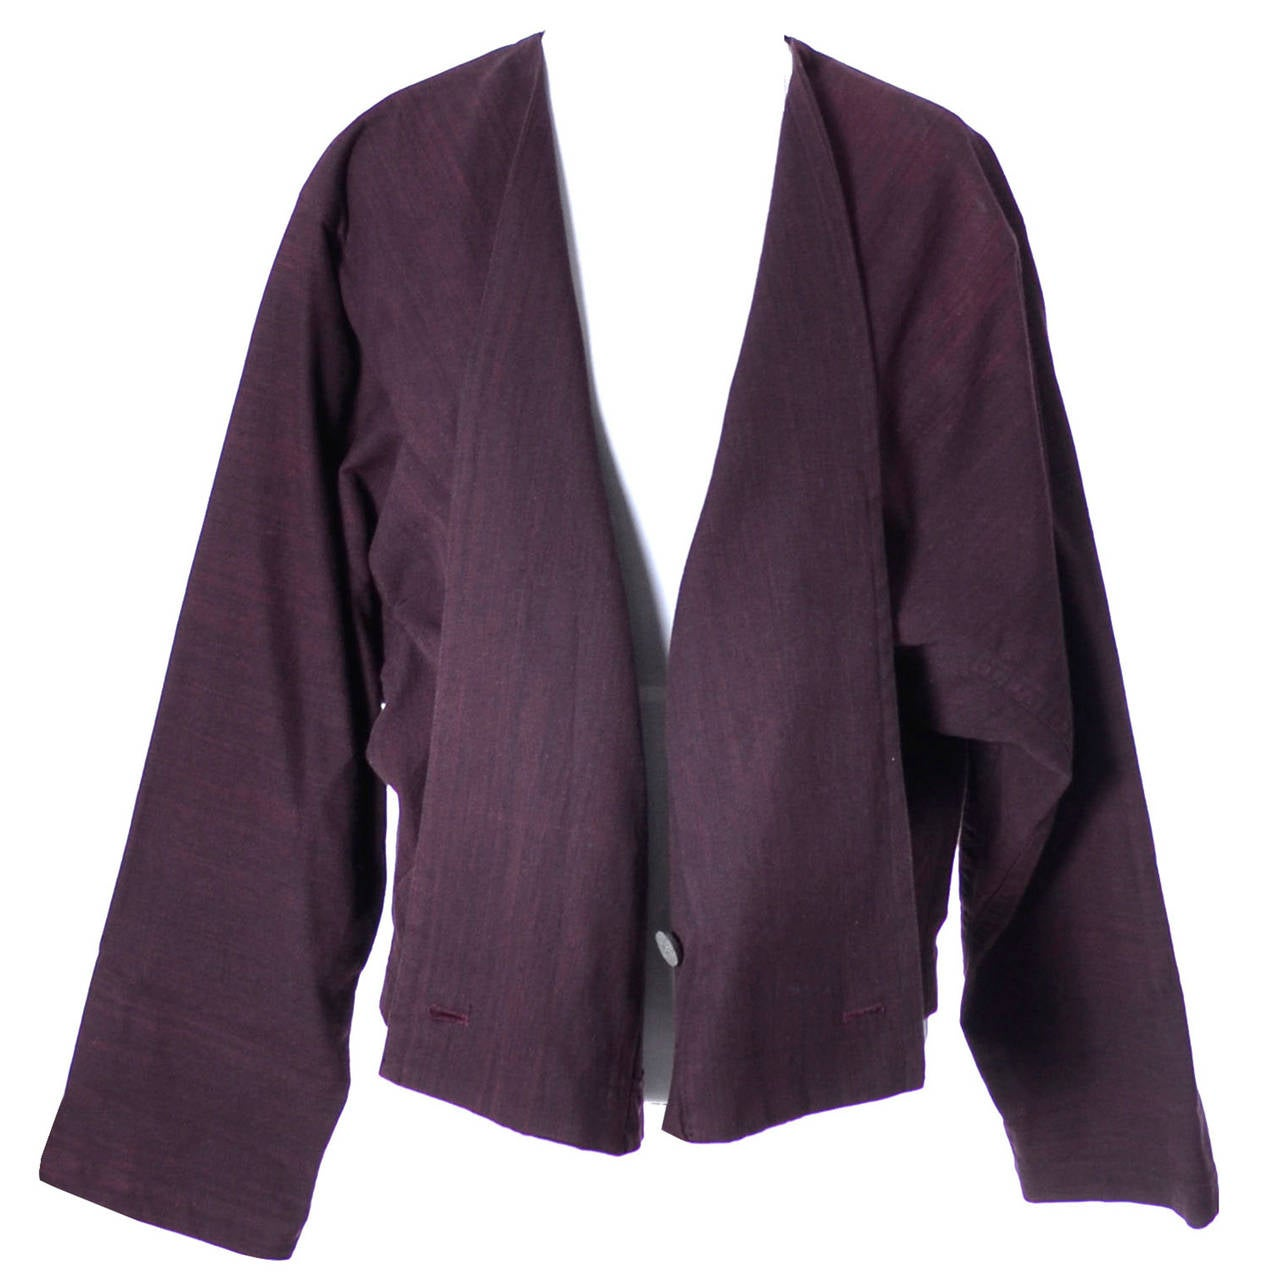 This is a vintage kimono style top / jacket from Issey Miyake Plantation in heavy plum purple cotton with iconic Miyake oversized styling.  This fabulous vintage top is labeled a Medium but could be worn as a large for a different fit. There are